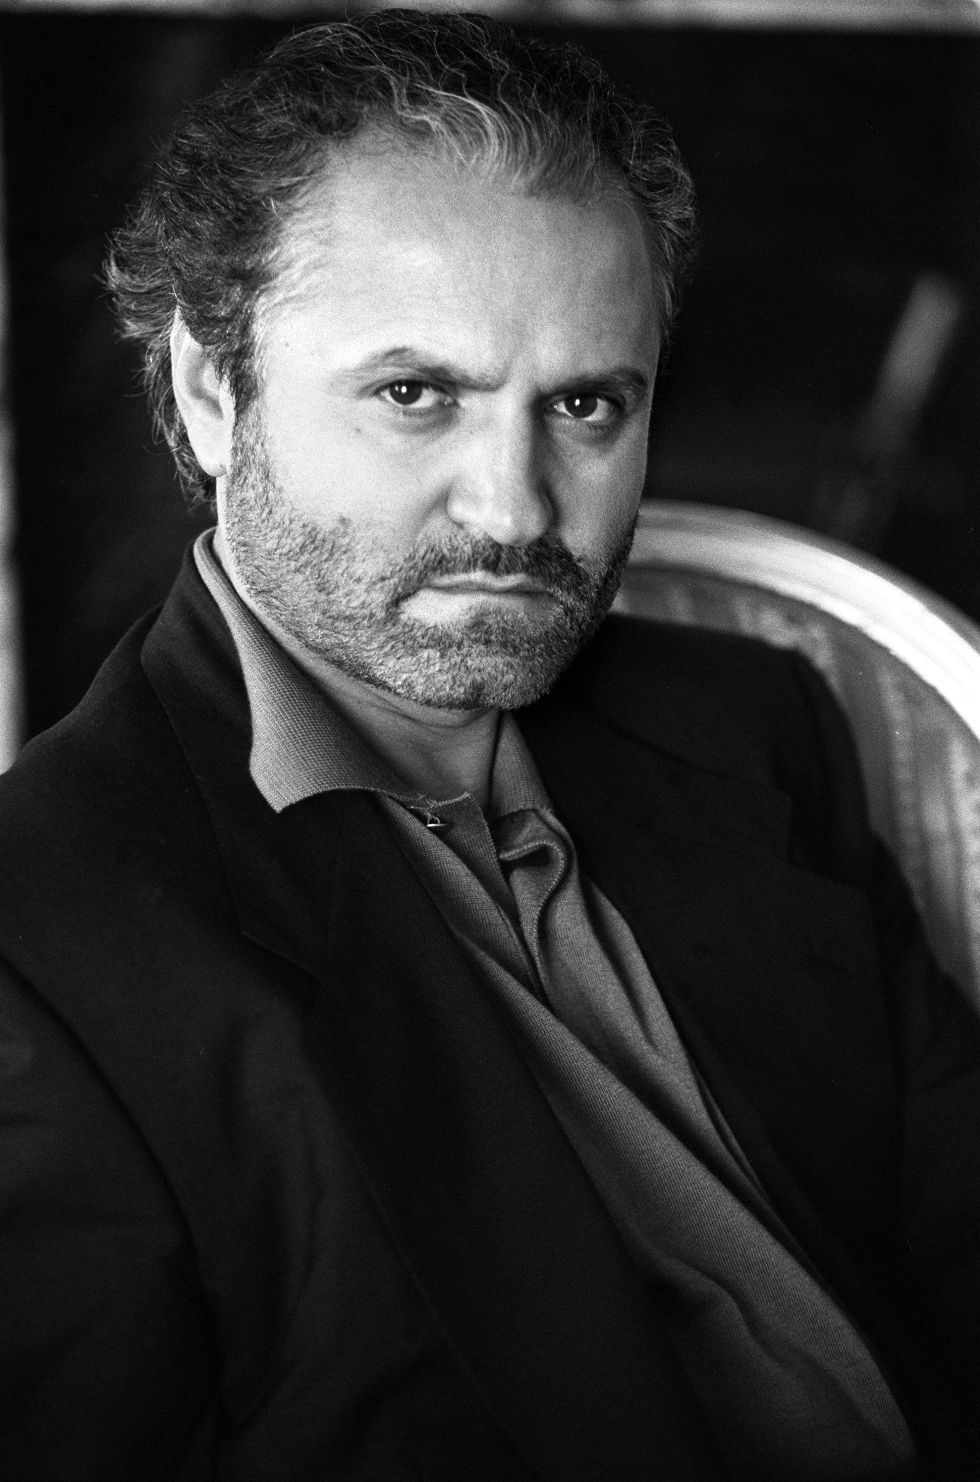 http://www.alux.com/wp-content/uploads/2016/03/15-Things-You-Didnt-Know-About-Gianni-Versace-9.jpg